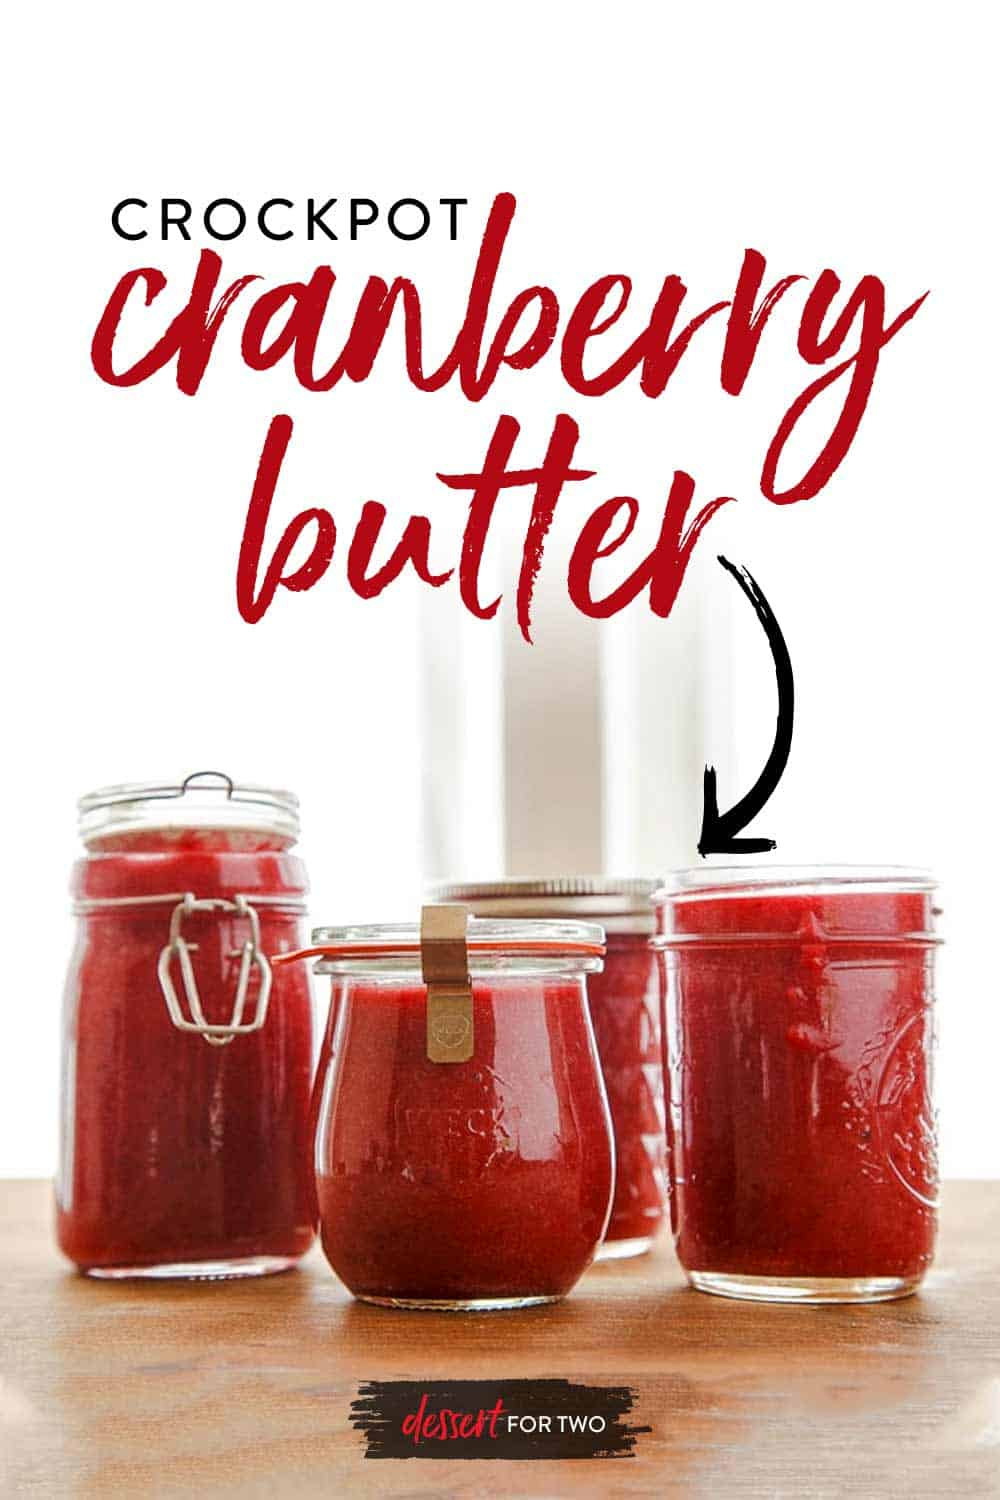 Cranberry sauce made in the slow cooker. Naturally sweetened with maple syrup and fresh orange juice. Puree it and use it like jam or spread on a cheese plate. #crockpot #crockpotcranberysauce #cranberry #cranberrybutter #slowcookercranberrysauce #crockpotcranberrybutter